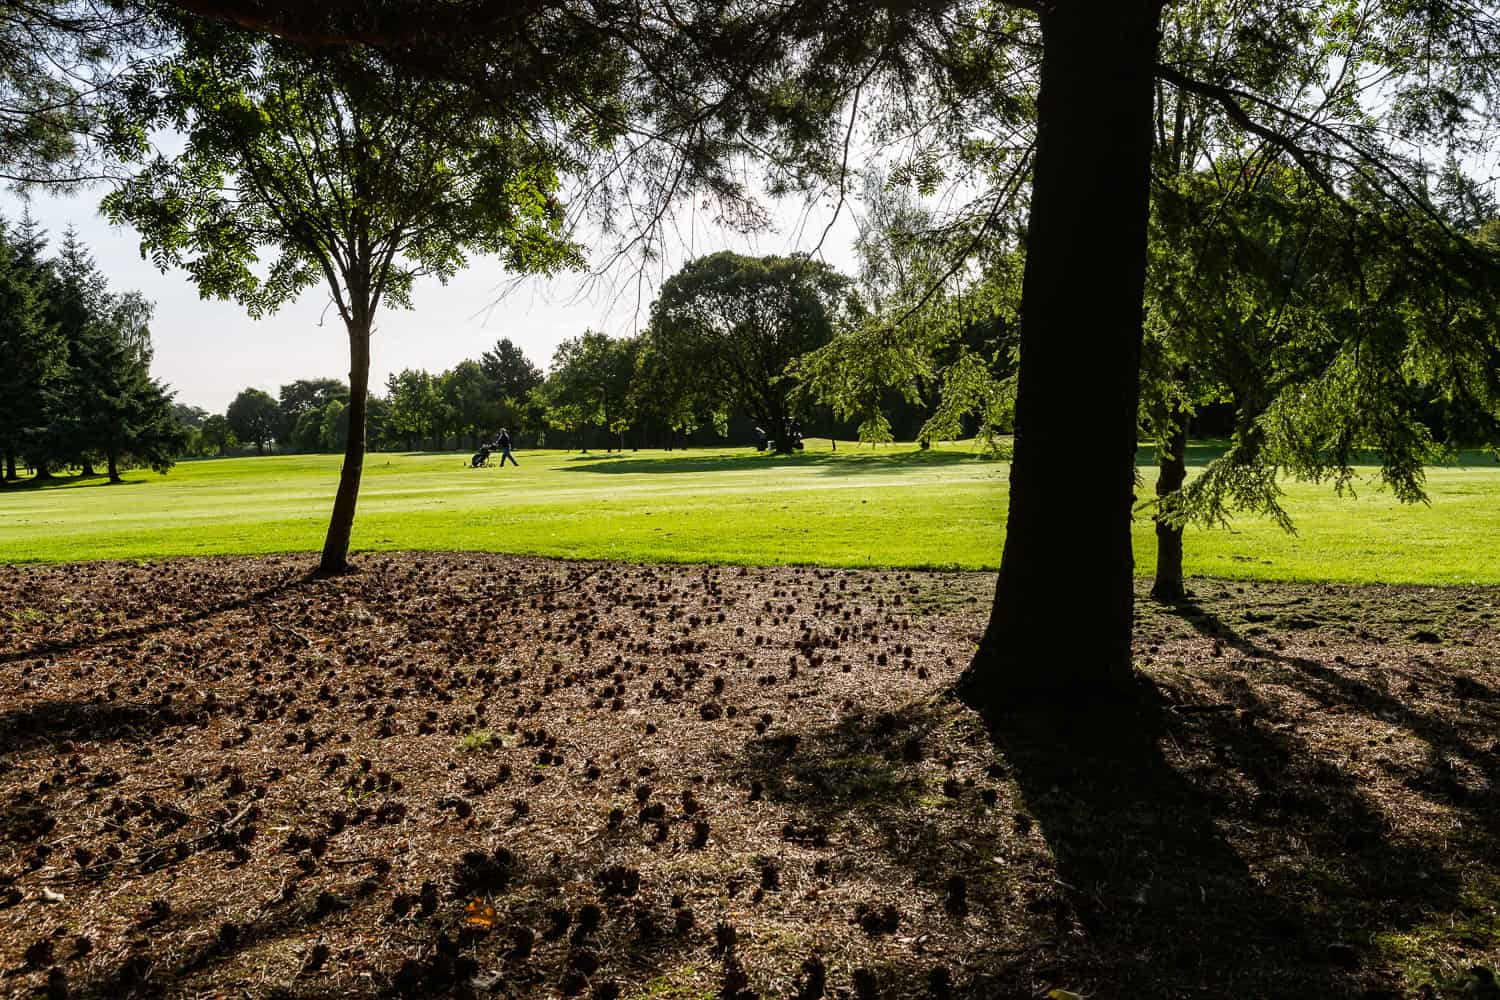 Uphall_Golf_Club_Course_Images (8 of 32)